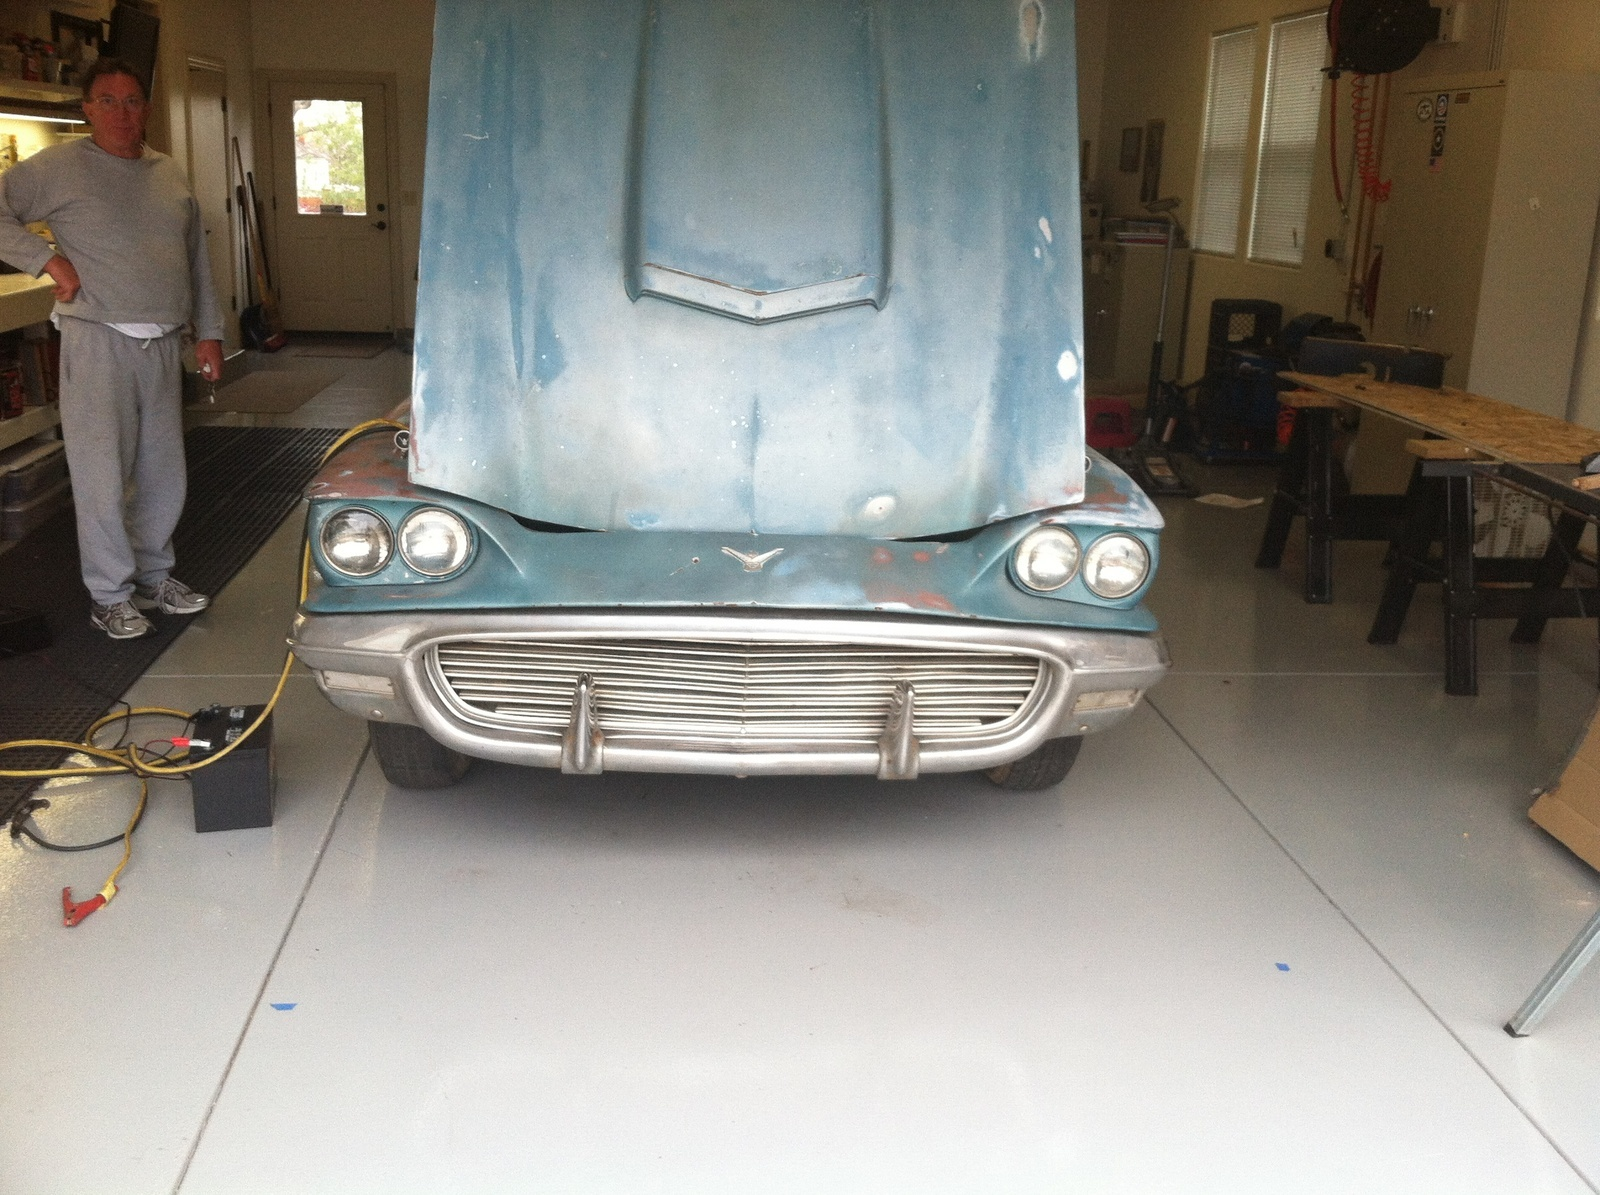 Ford Thunderbird Questions Average Restoration Cost Cargurus Transmission Wiring Harness Replacement Im Thinking About Cutting My Losses And Giving Up The Body Work Will Prolly 7500 At Least Thats Not Counting Paint